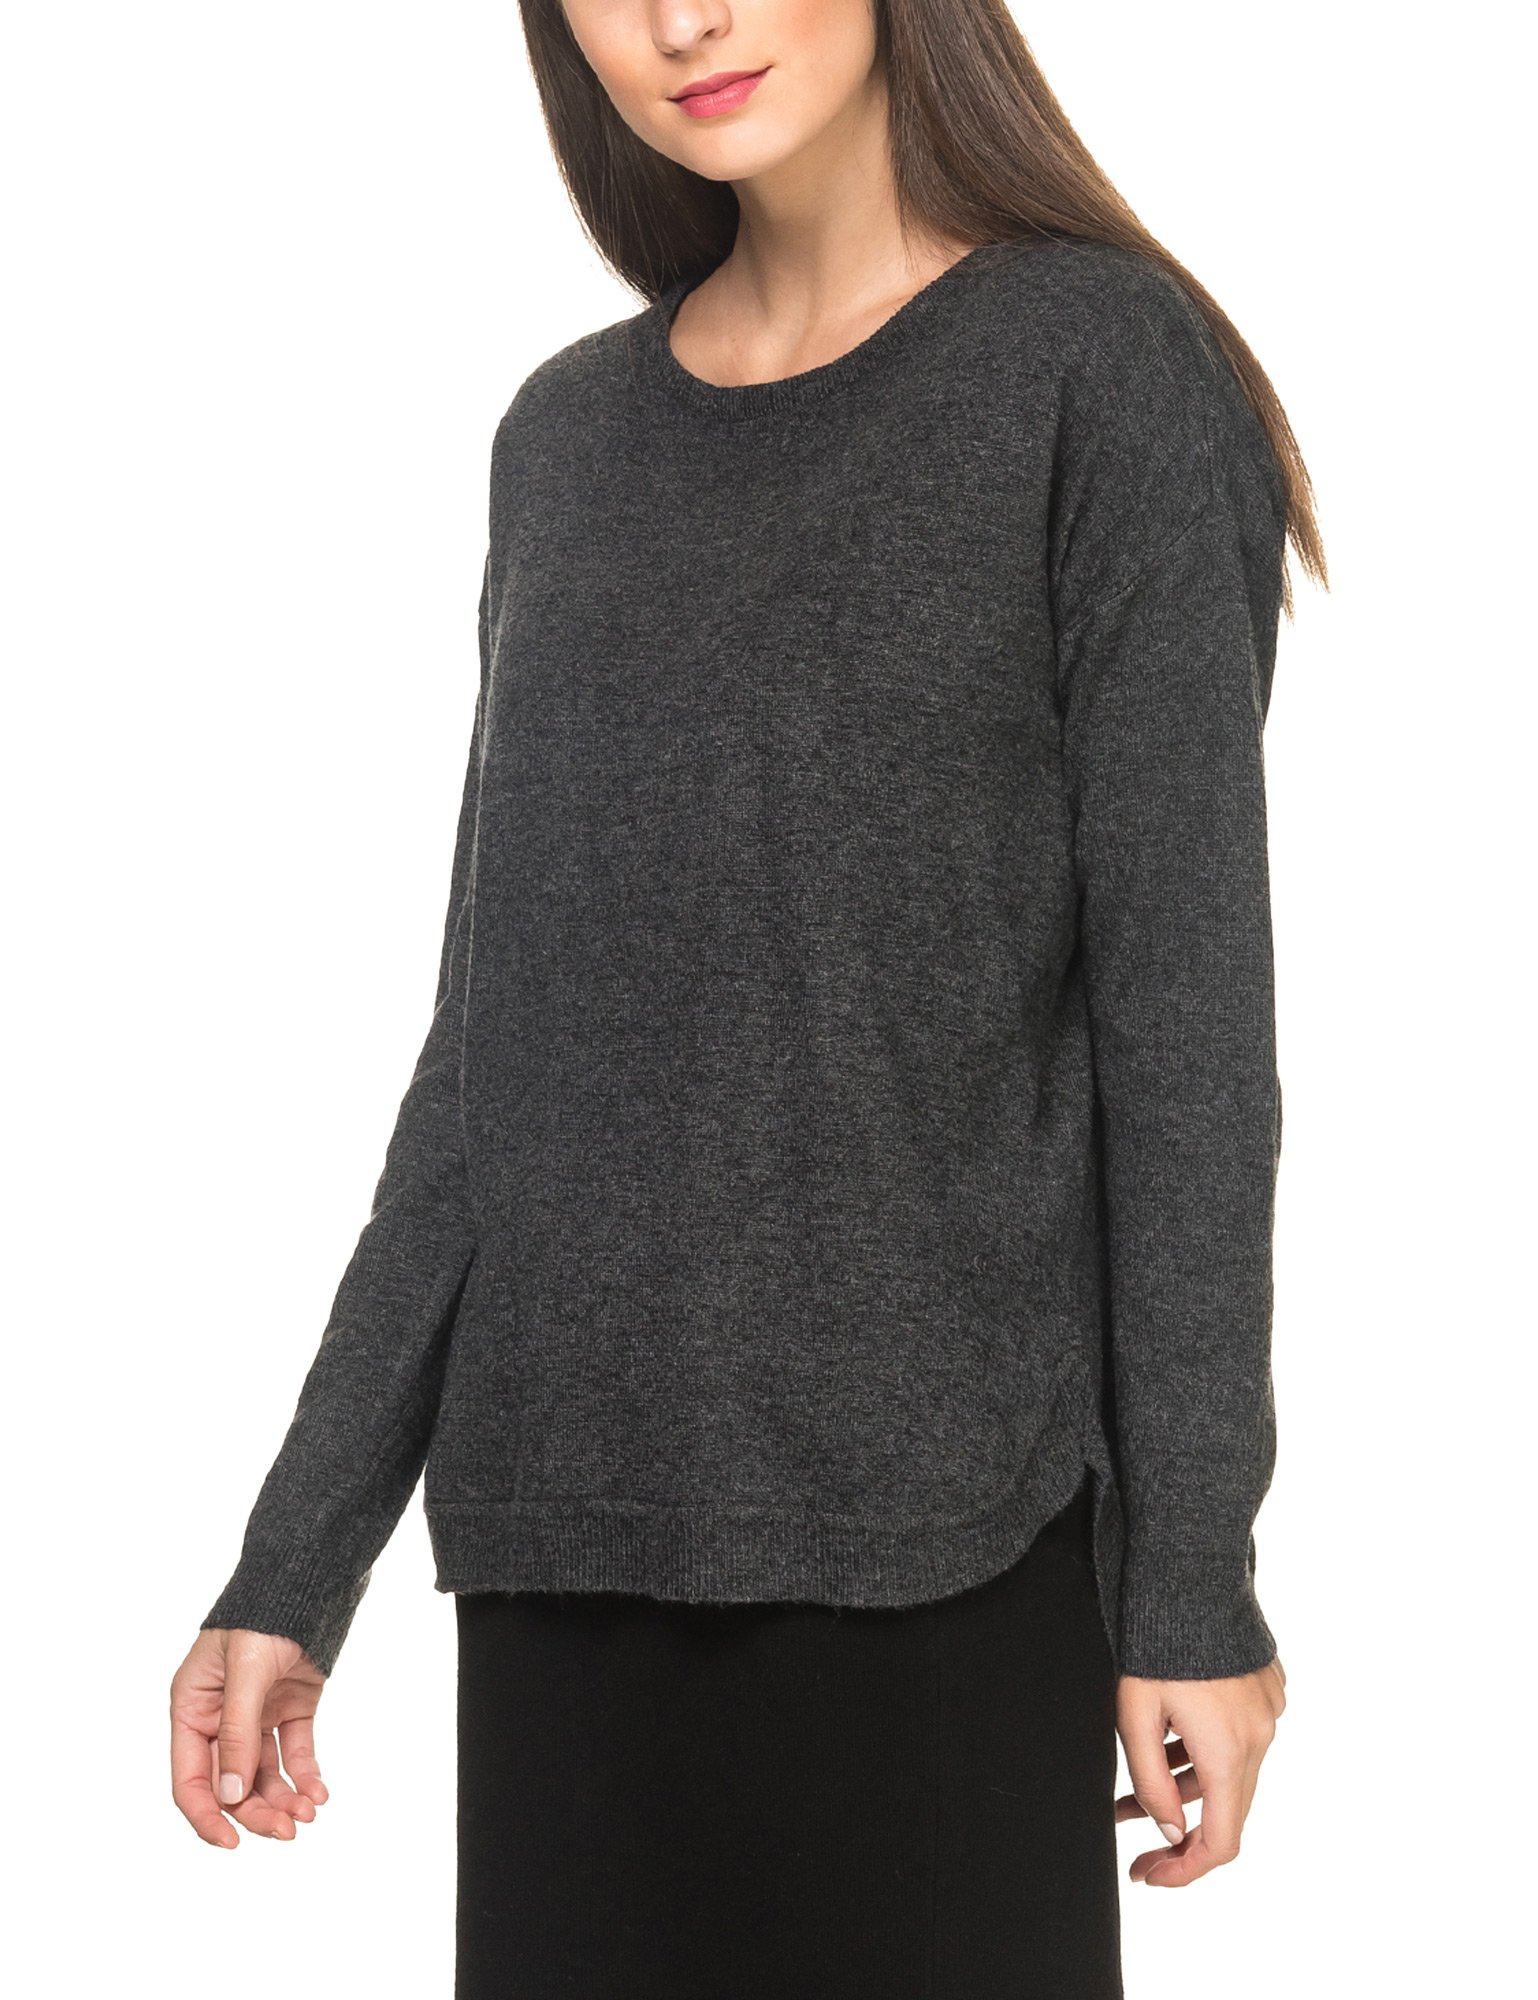 B.Young Women's Moco Women's Dark Grey Melange Pullover in Size L Grey